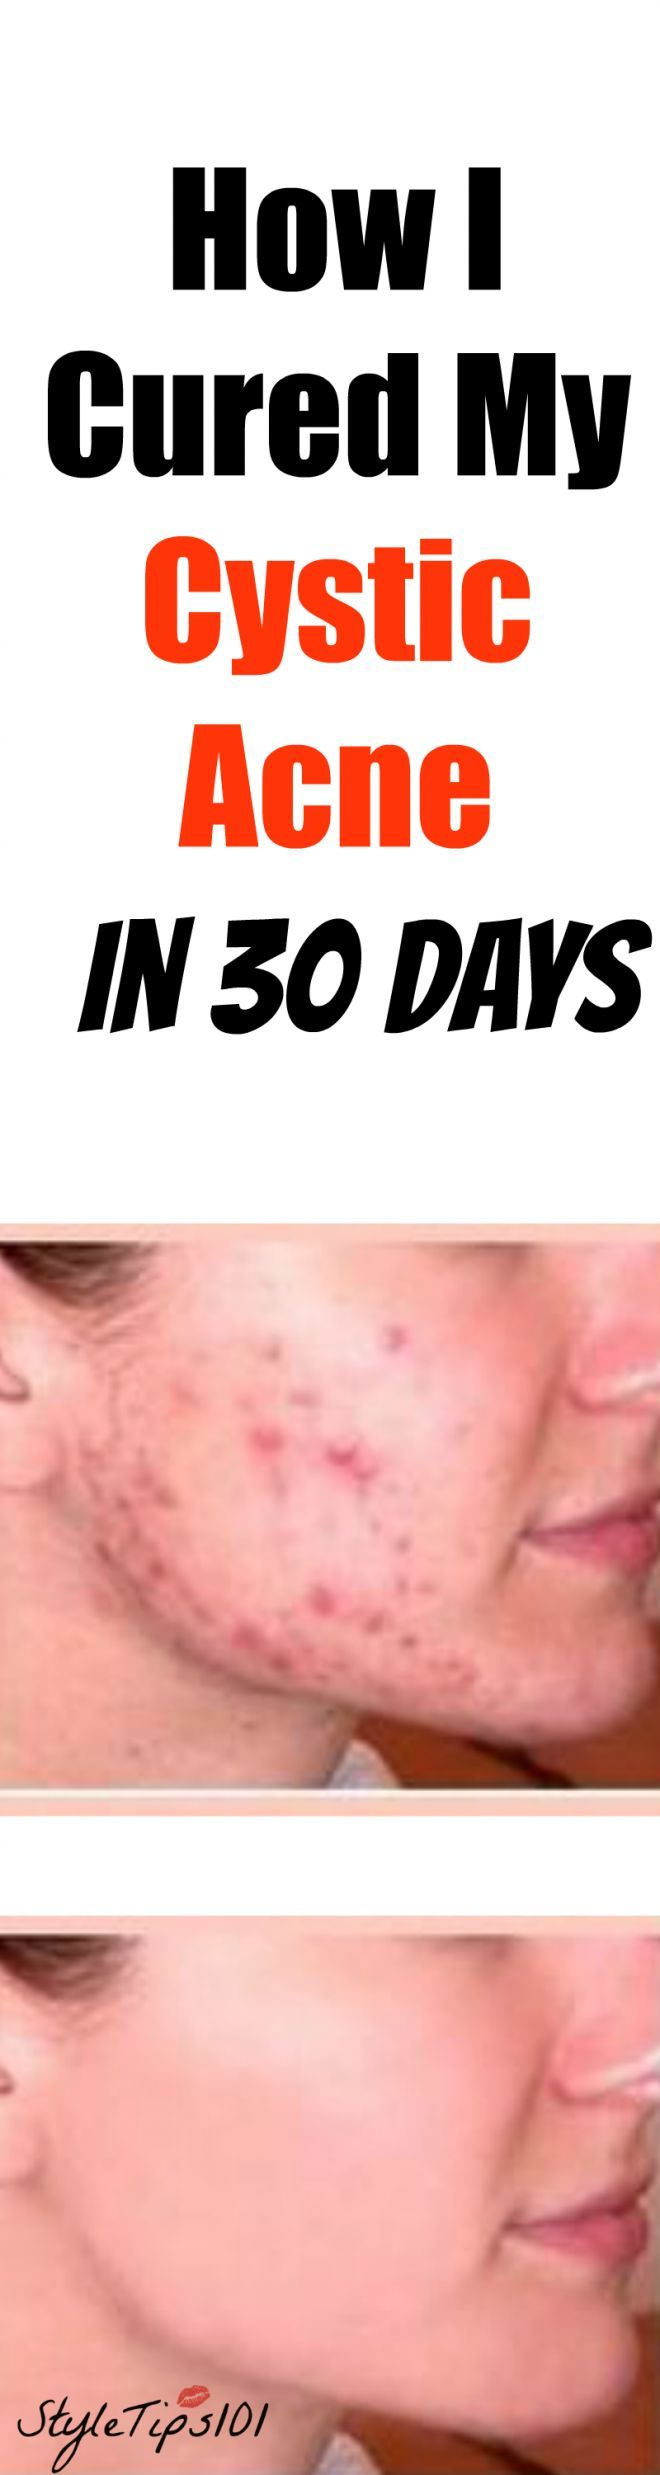 how-i-cured-my-cystic-acne-in-30-days #naturalskincare ...